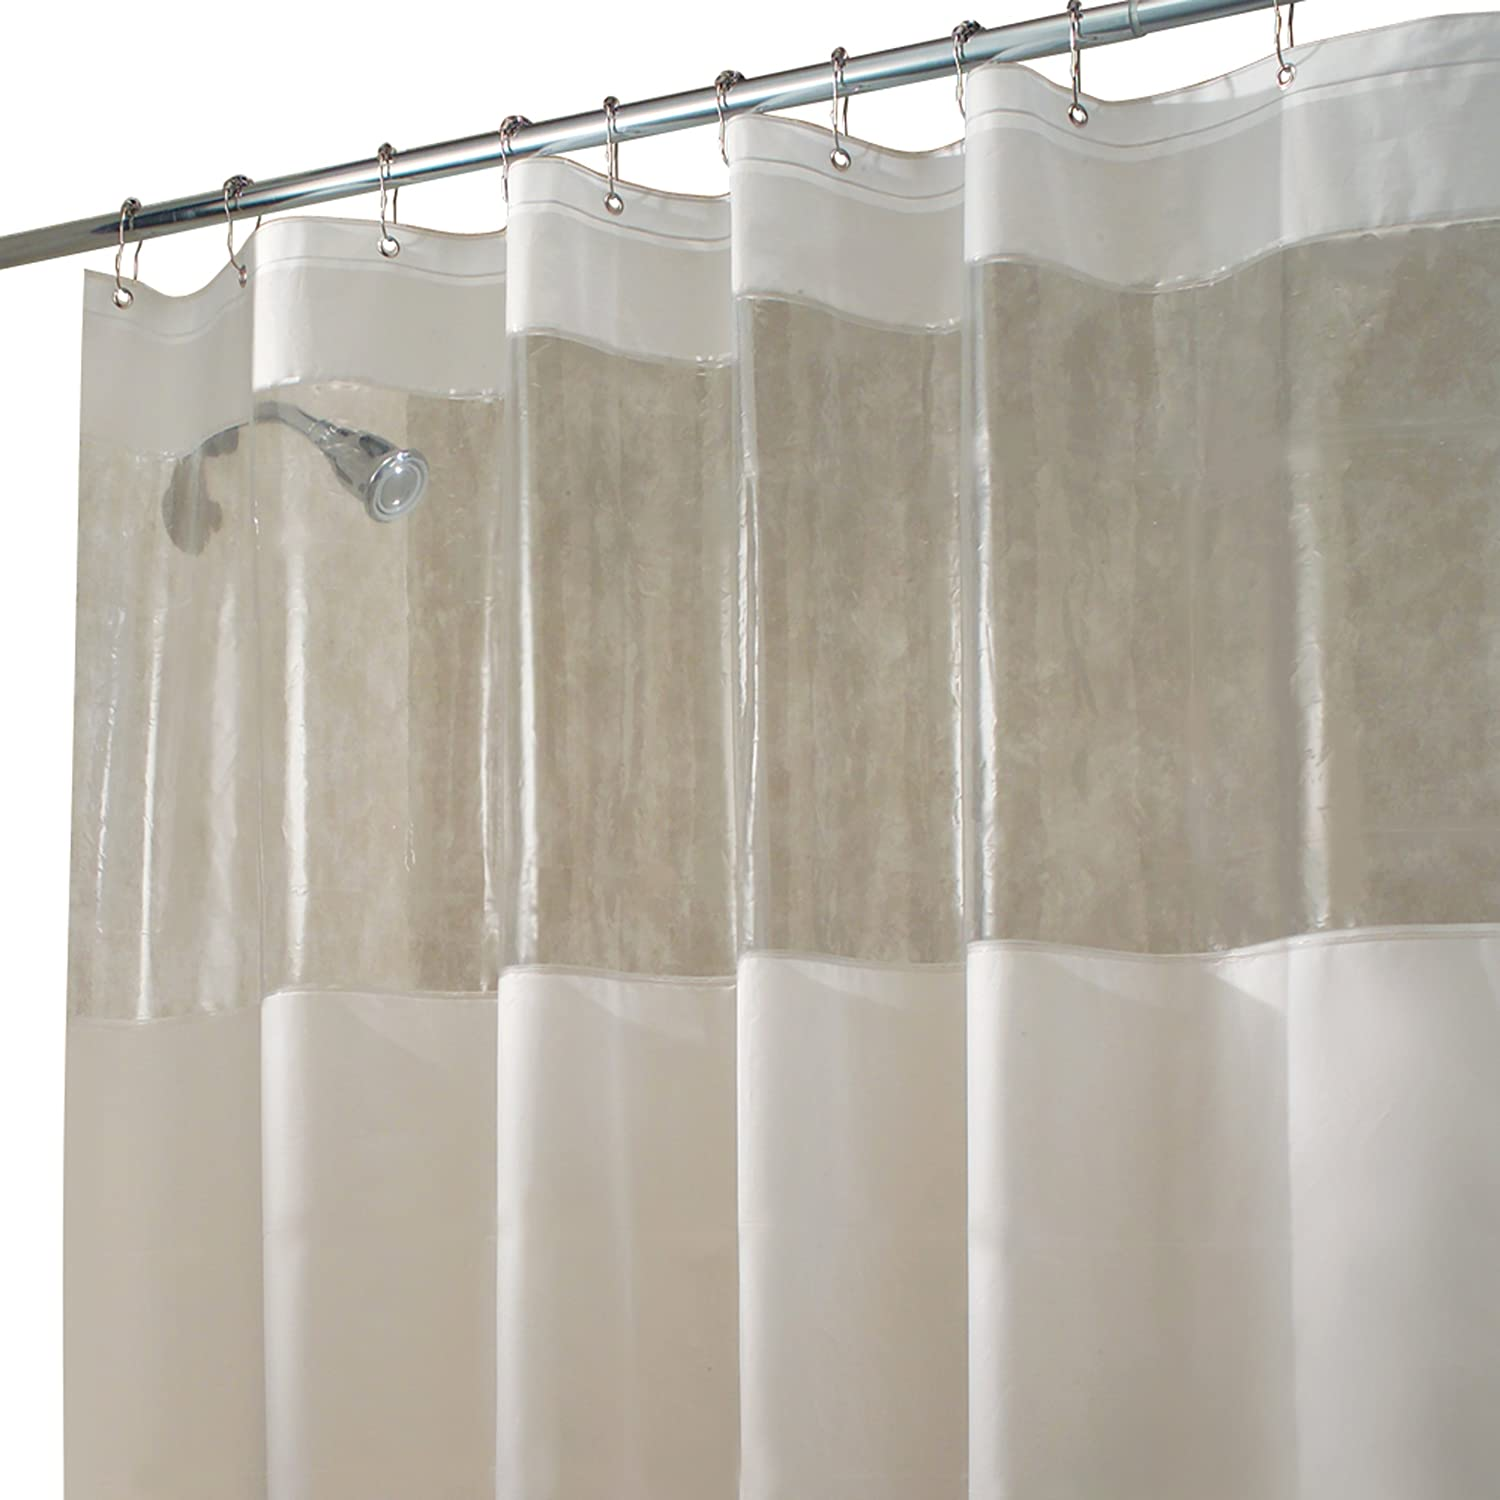 dp by home inch decor curtains com amazon white curtain darla kitchen shower lush